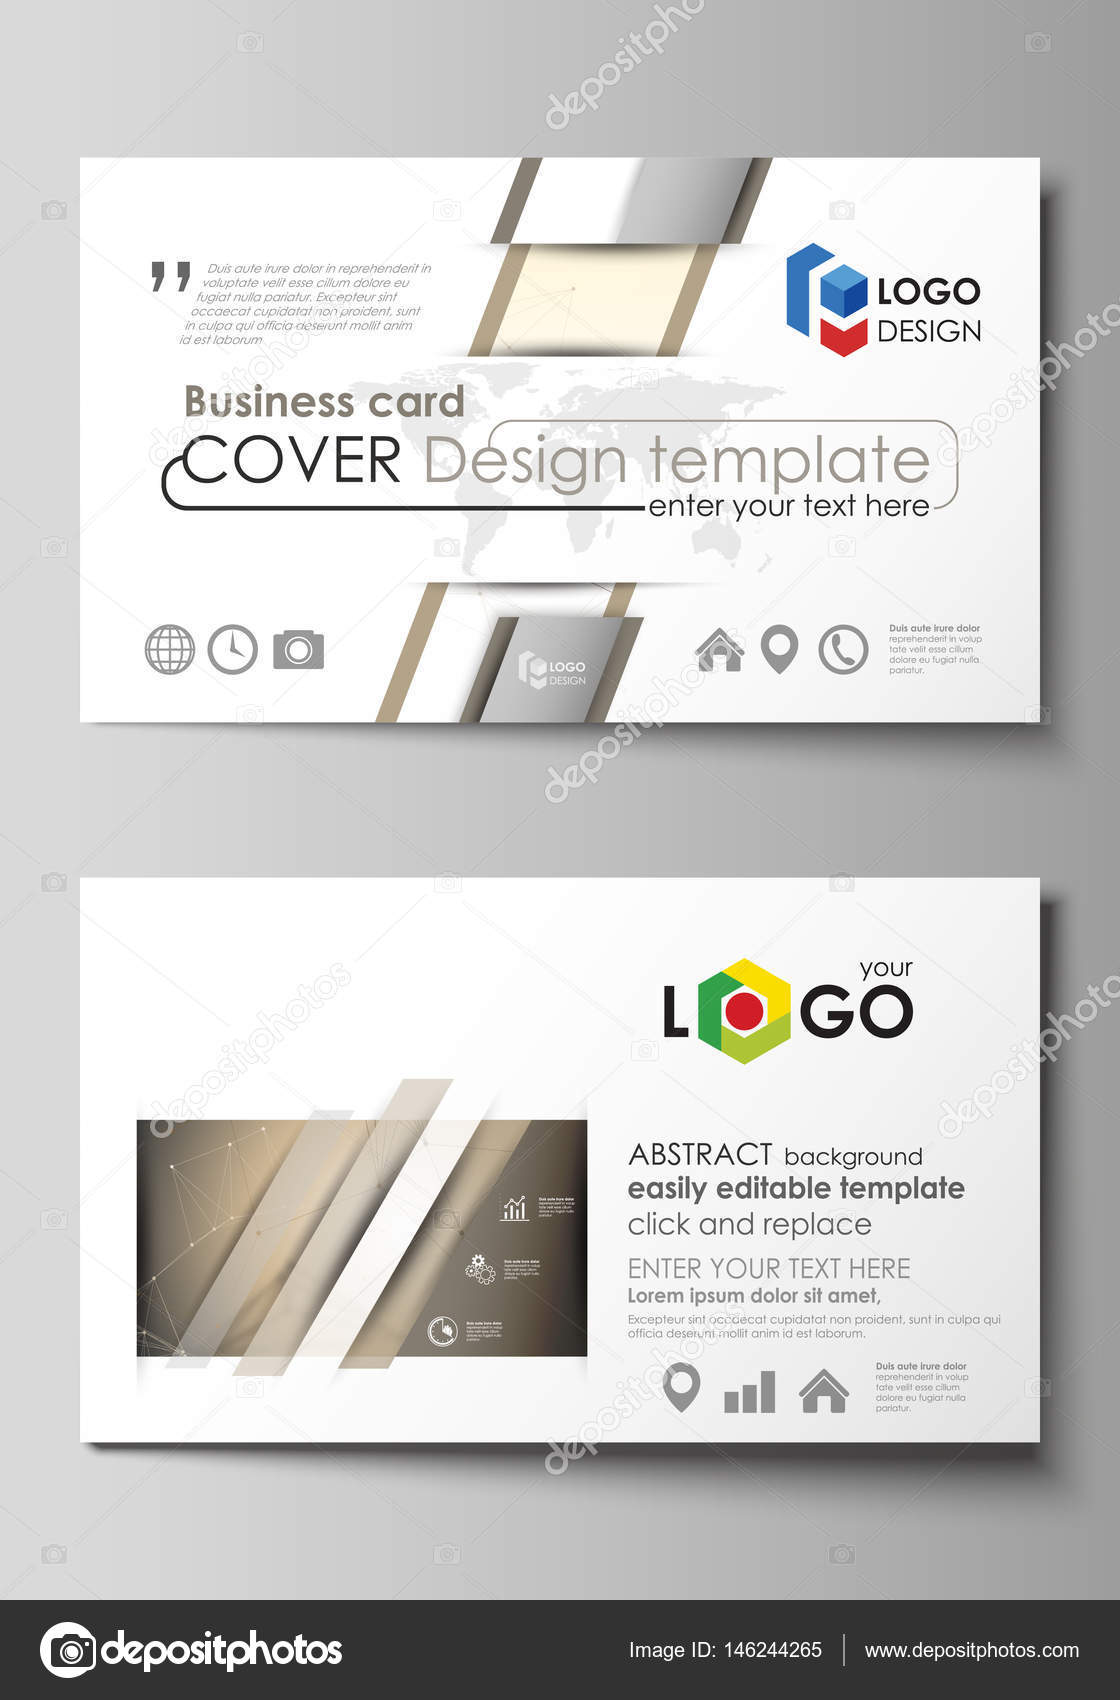 Business card templates easy editable layout abstract vector business card templates easy editable layout abstract vector design template technology science medical concept golden dots and lines alramifo Images